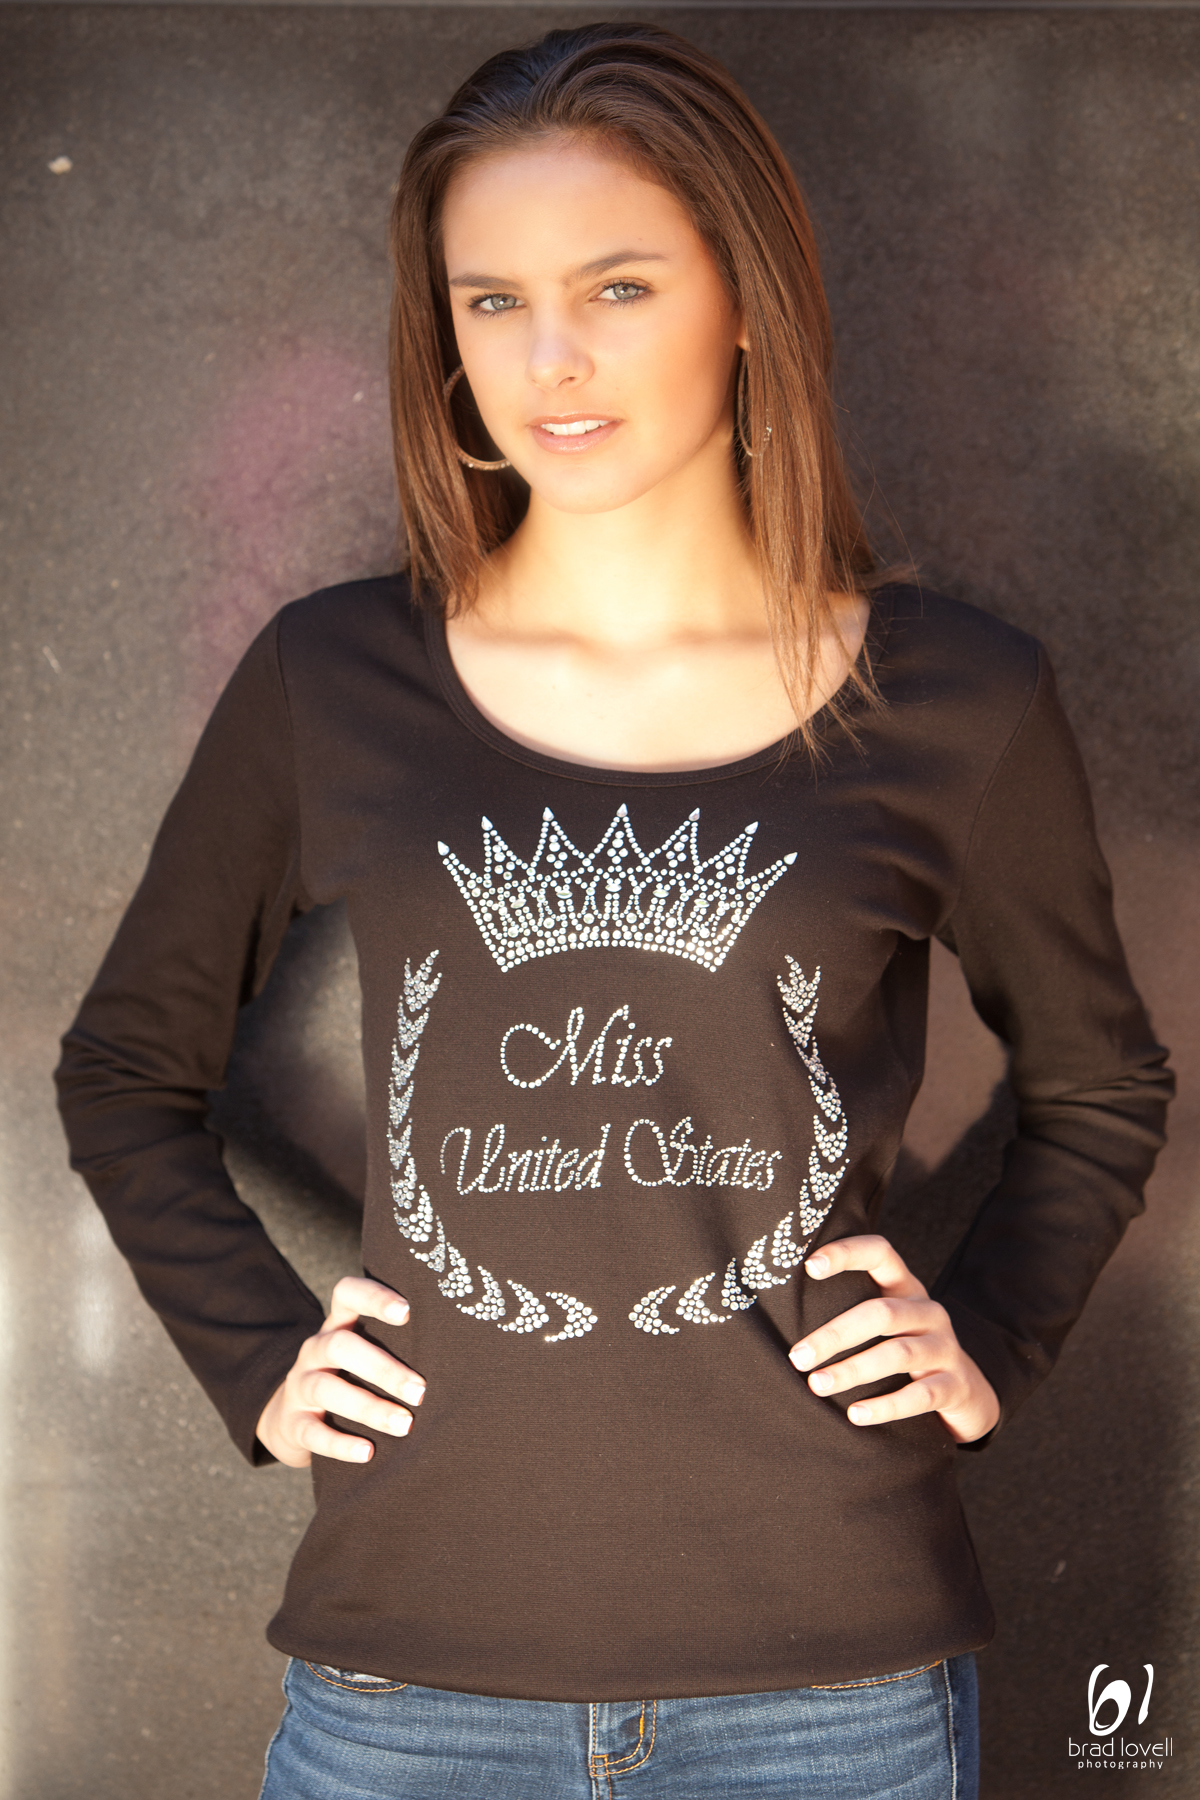 miss-united-states-shirt-final.jpg